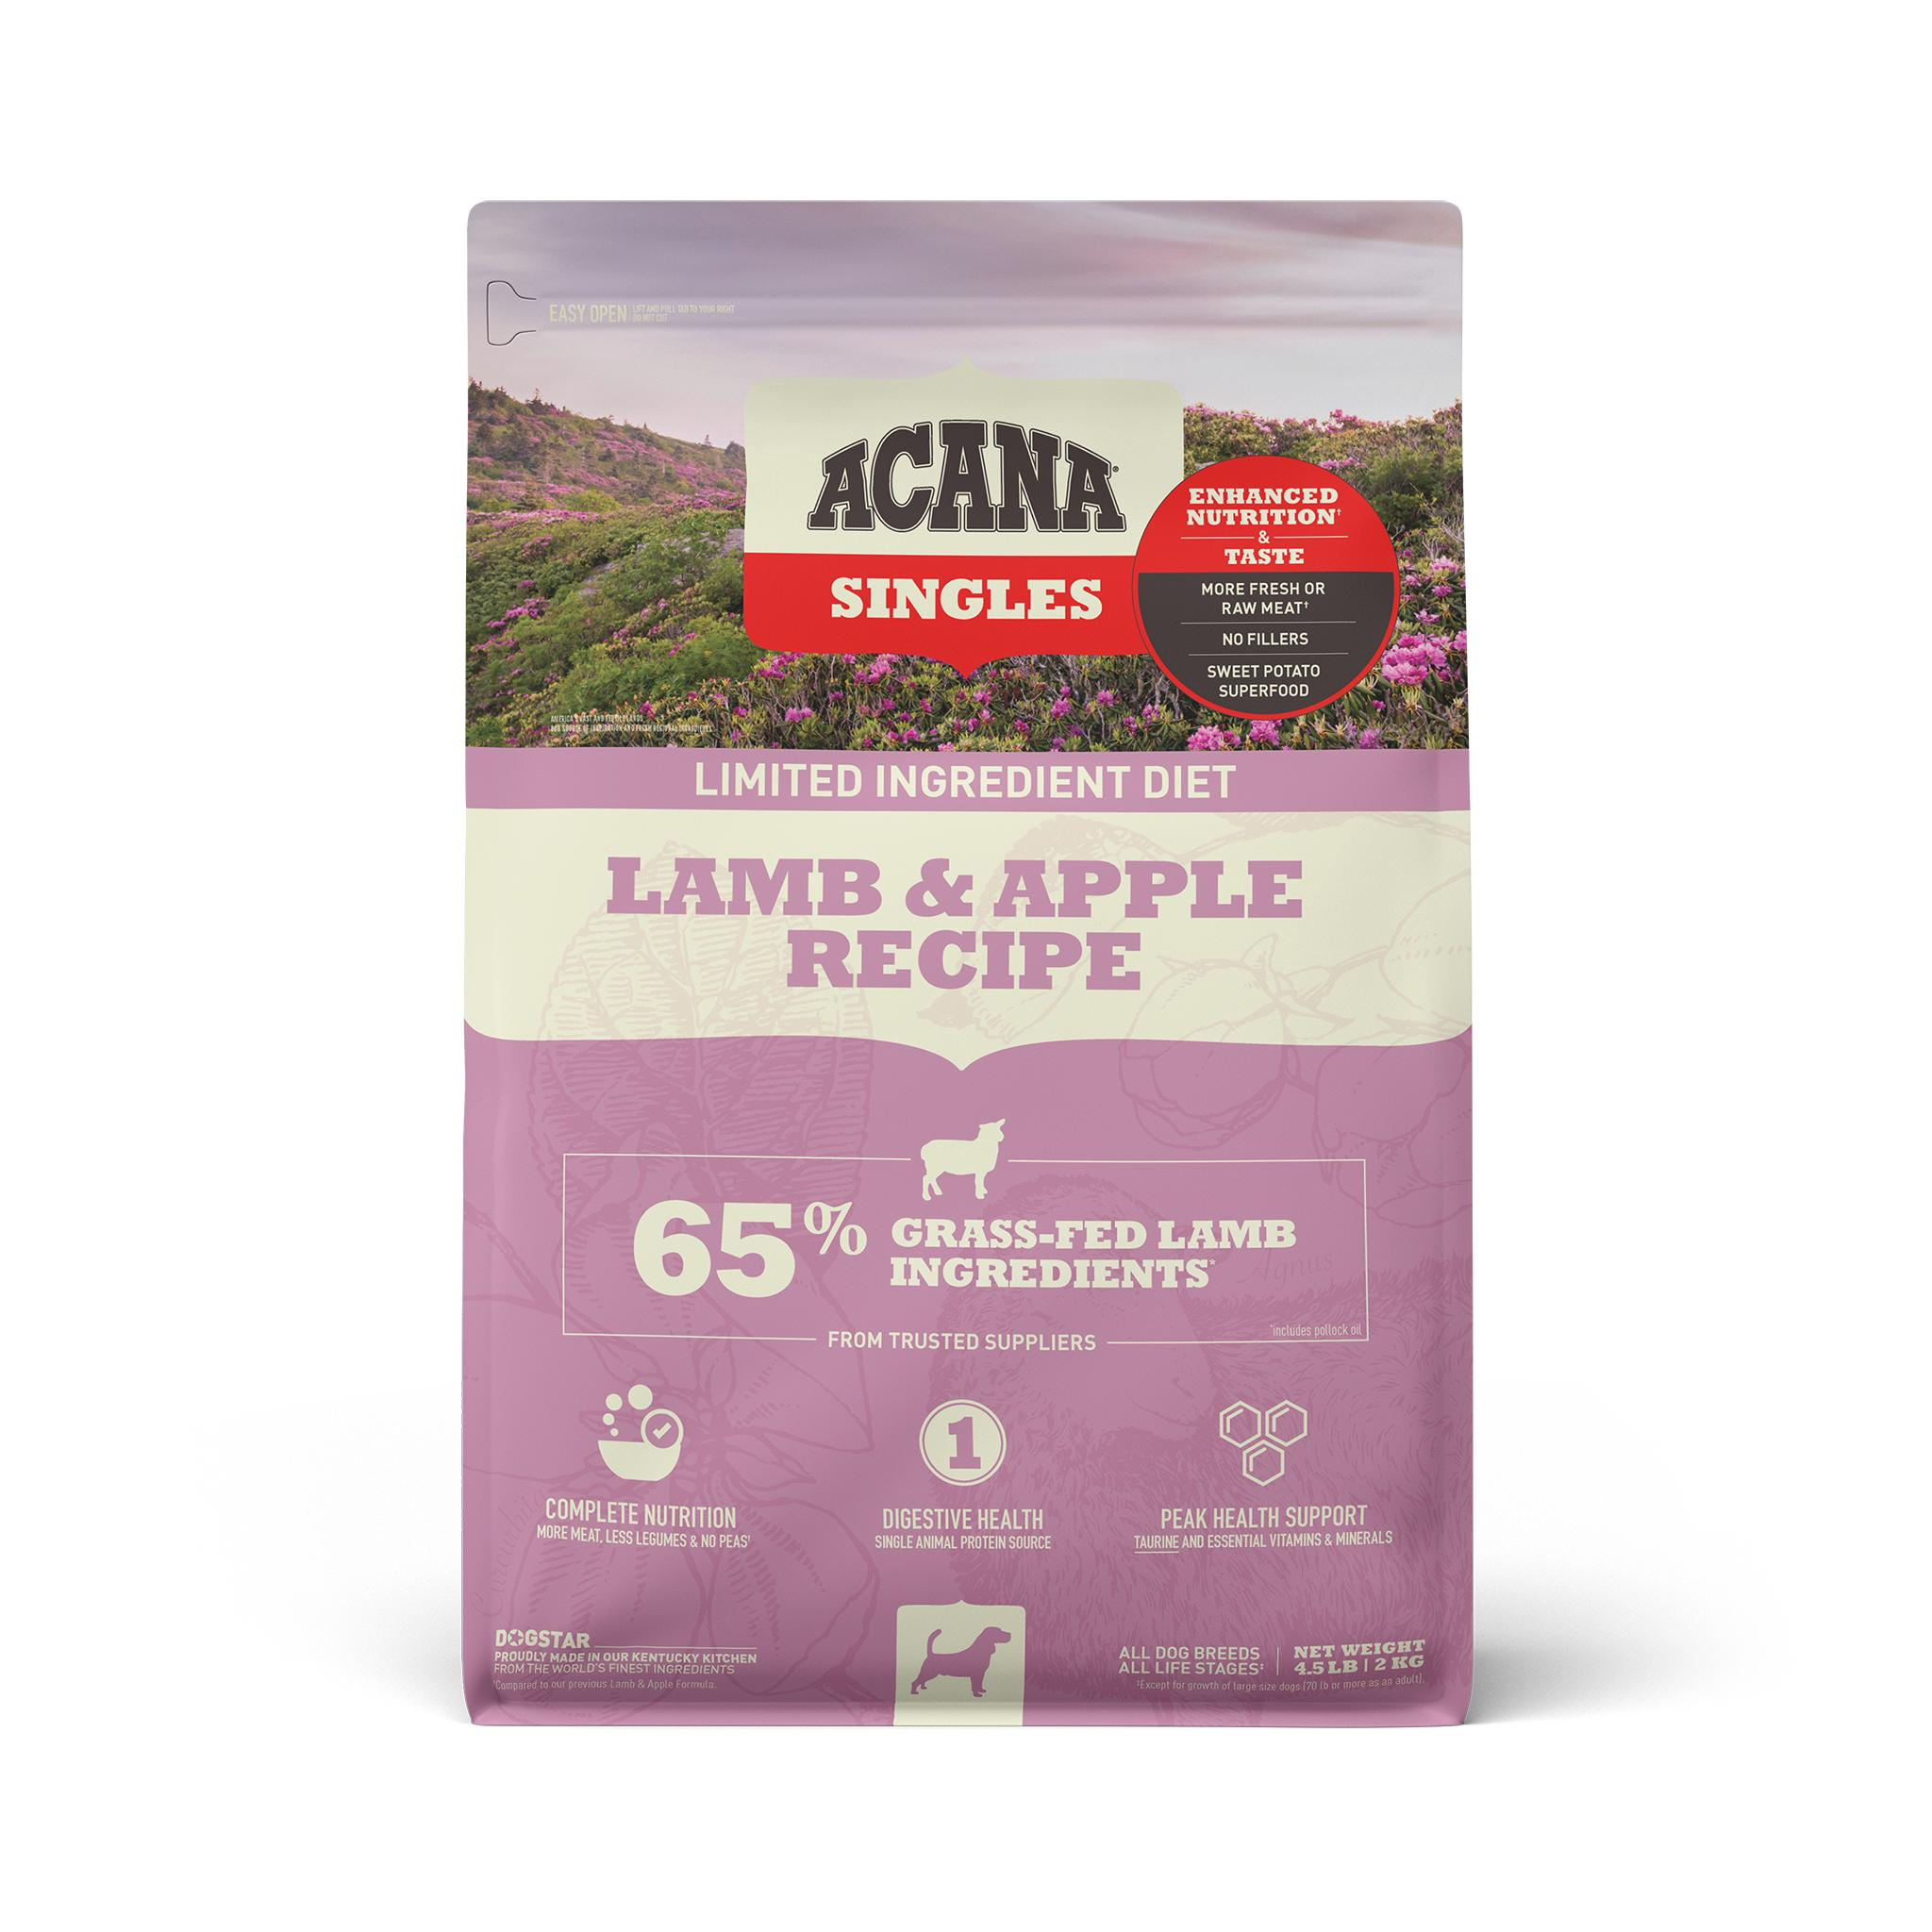 ACANA Singles Limited Ingredient Lamb & Apple Grain-Free Dry Dog Food, 4.5-lb bag